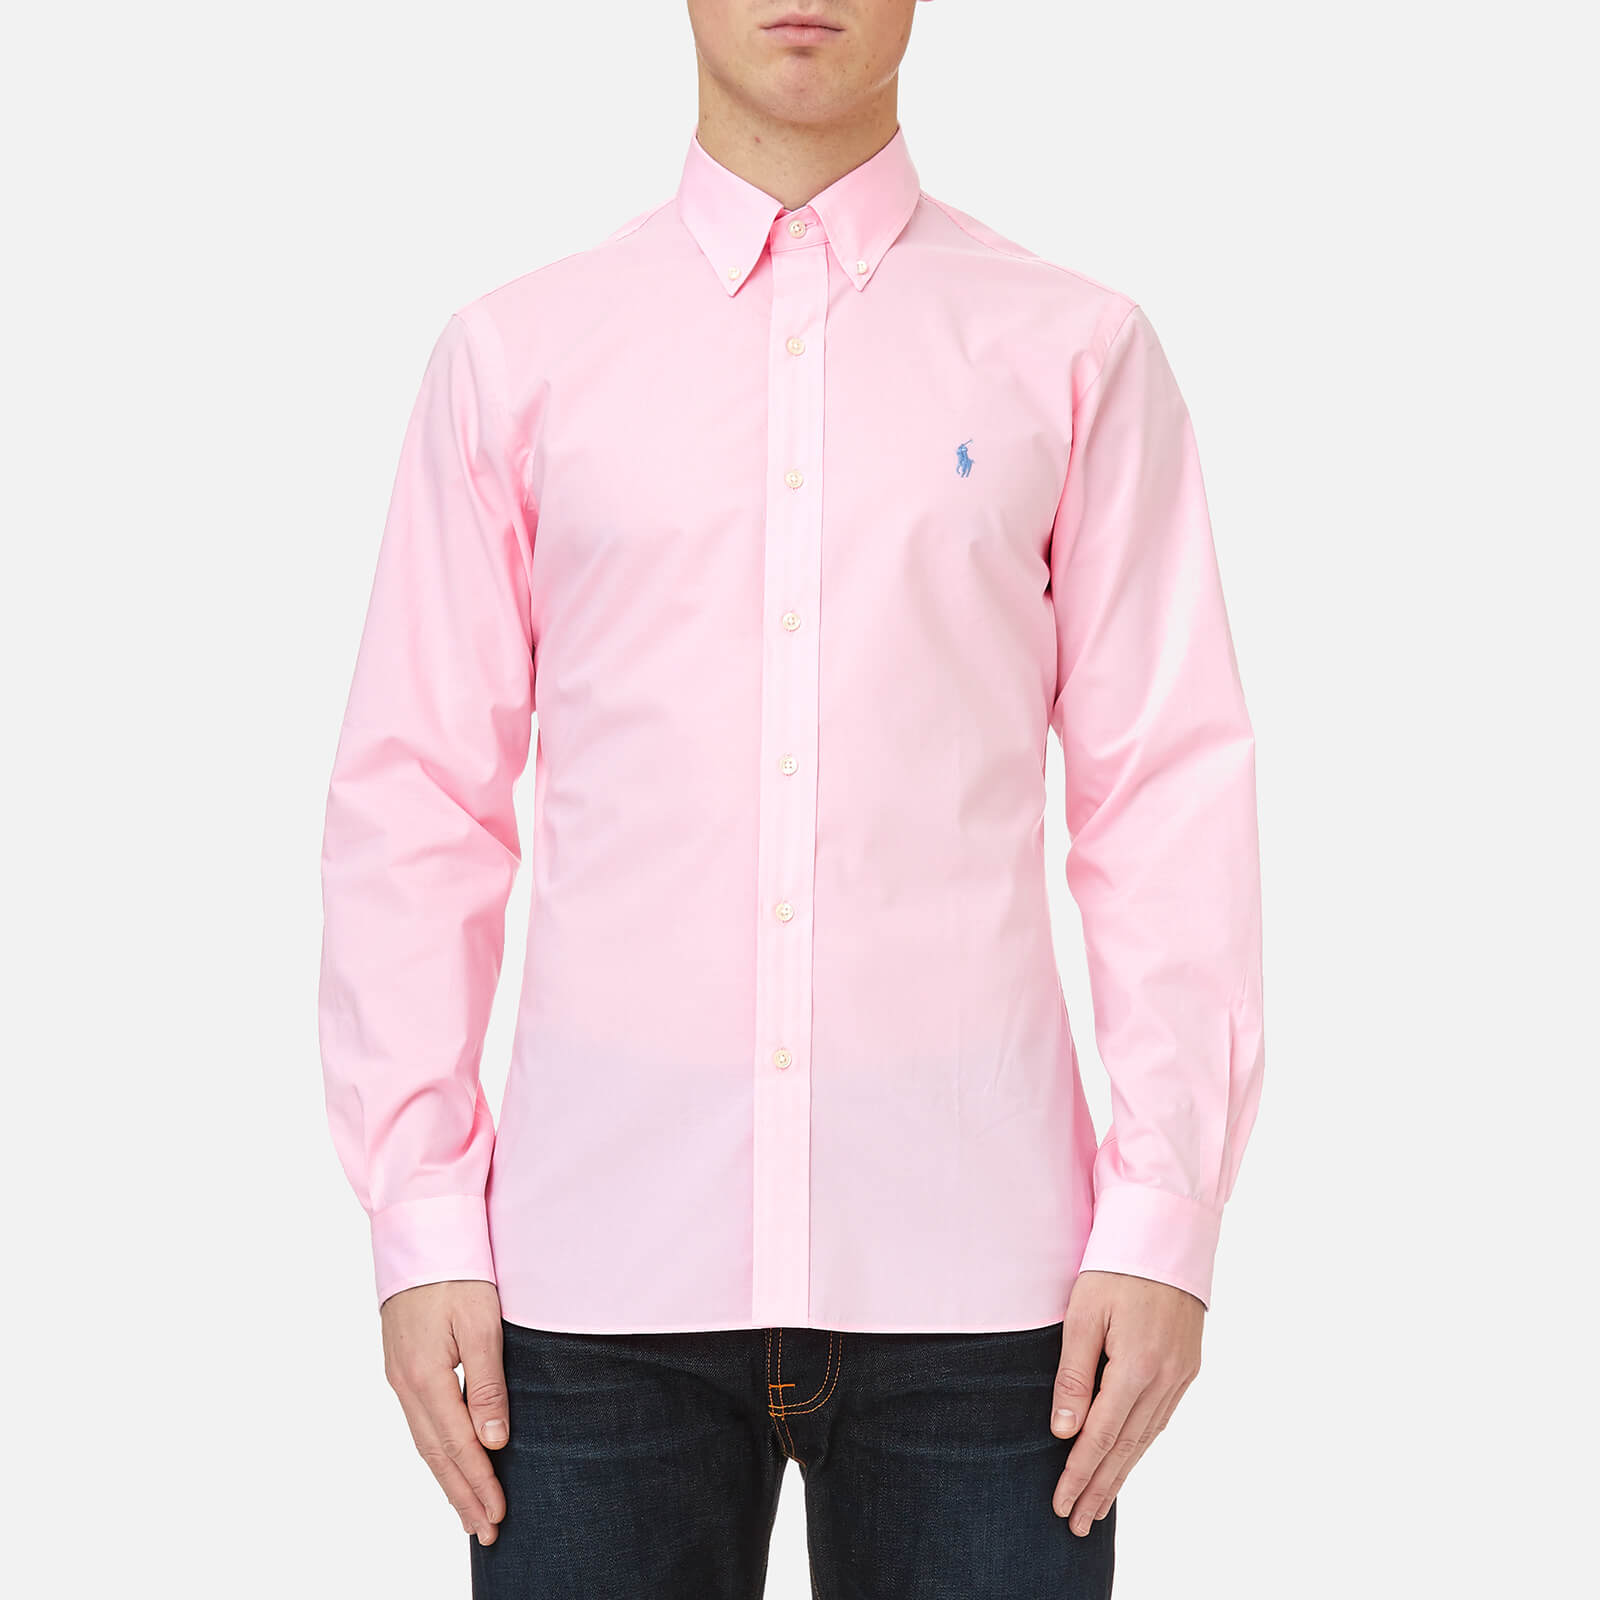 c0a66d24e Polo Ralph Lauren Men's Slim Fit Poplin Shirt - Carmel Pink - Free UK  Delivery over £50